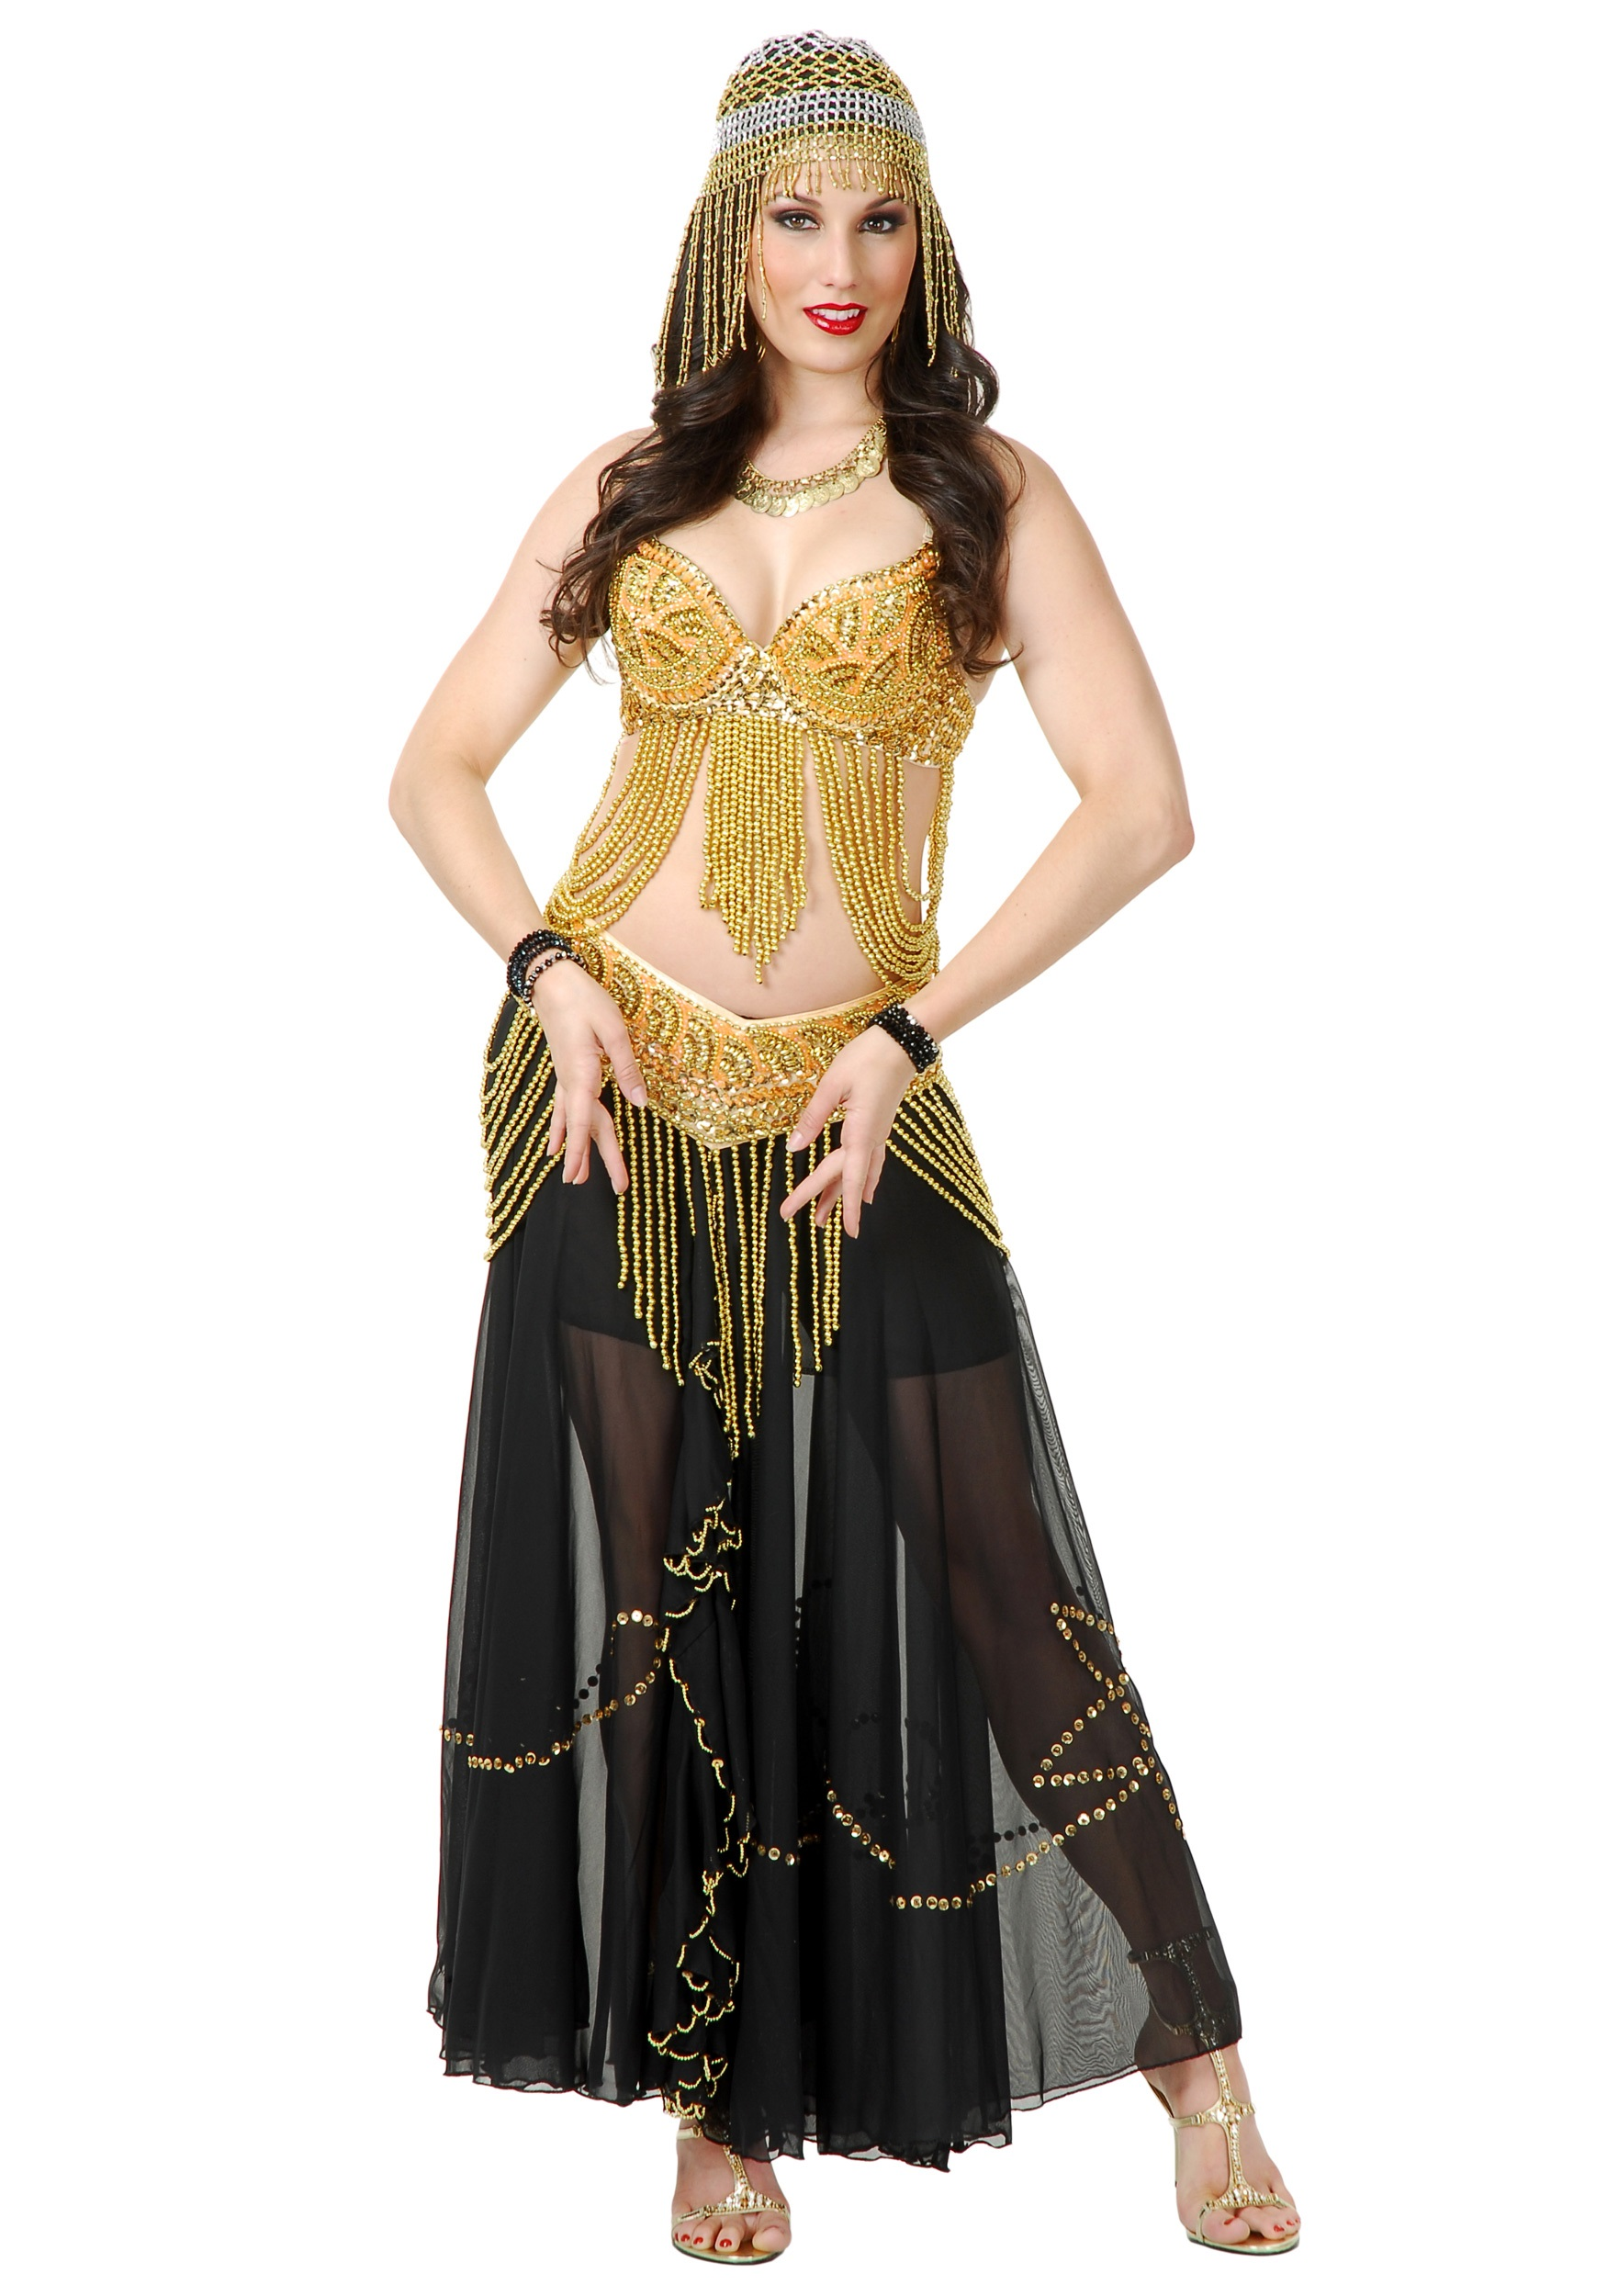 Golden Belly Dancer Costume